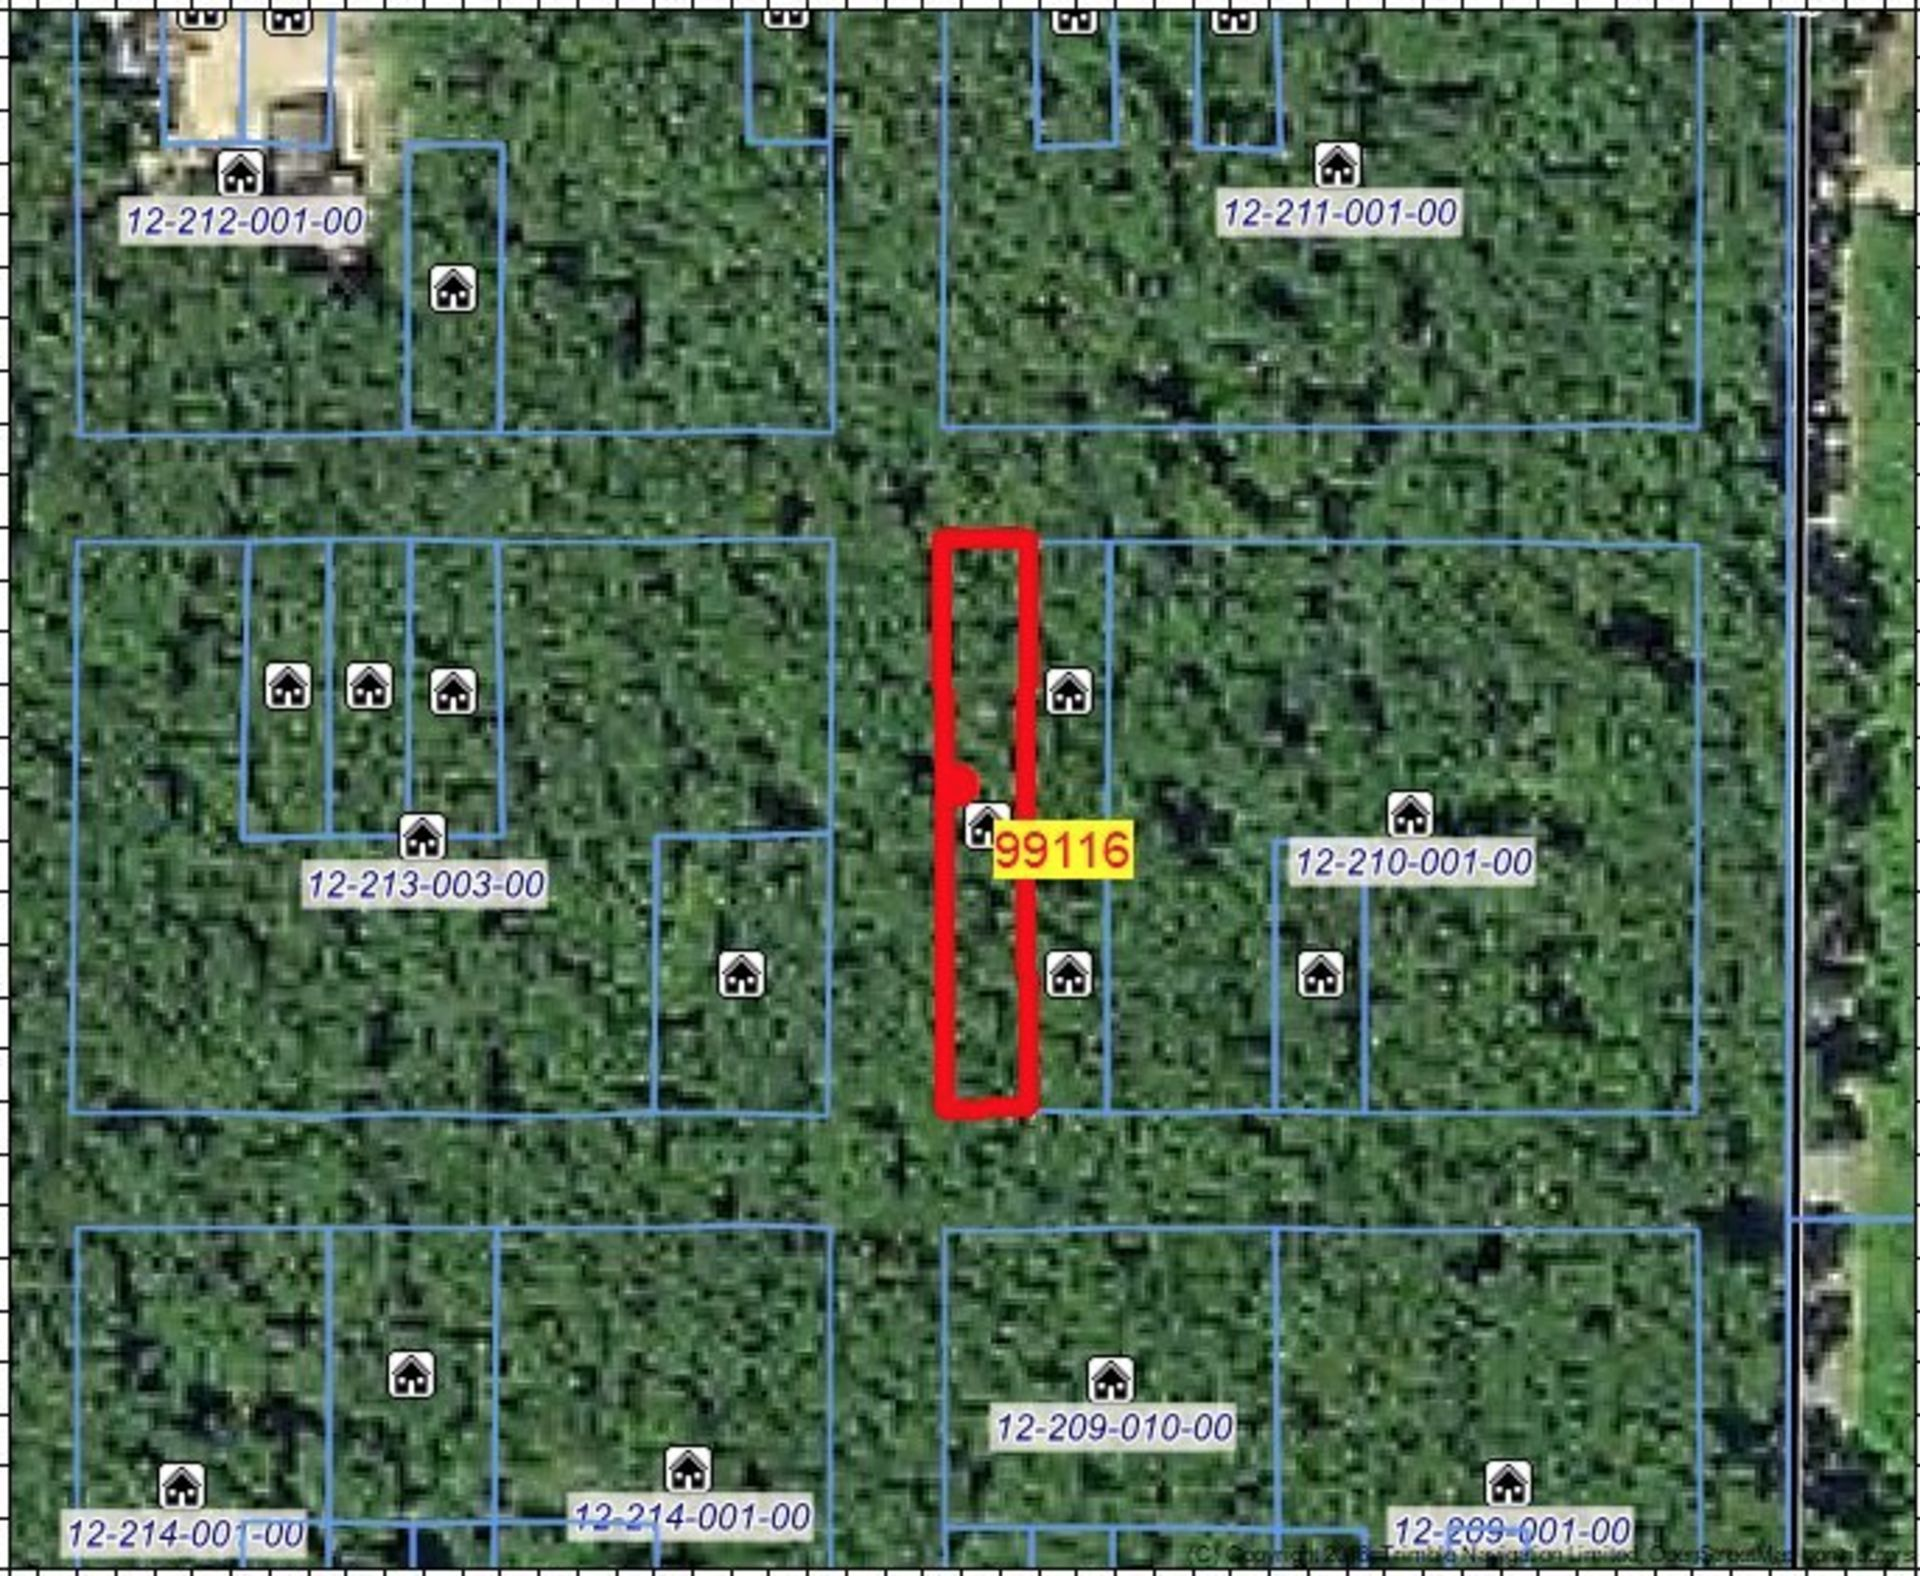 Beautiful Lot Situated in Allegann County, Michigan! - Image 2 of 5